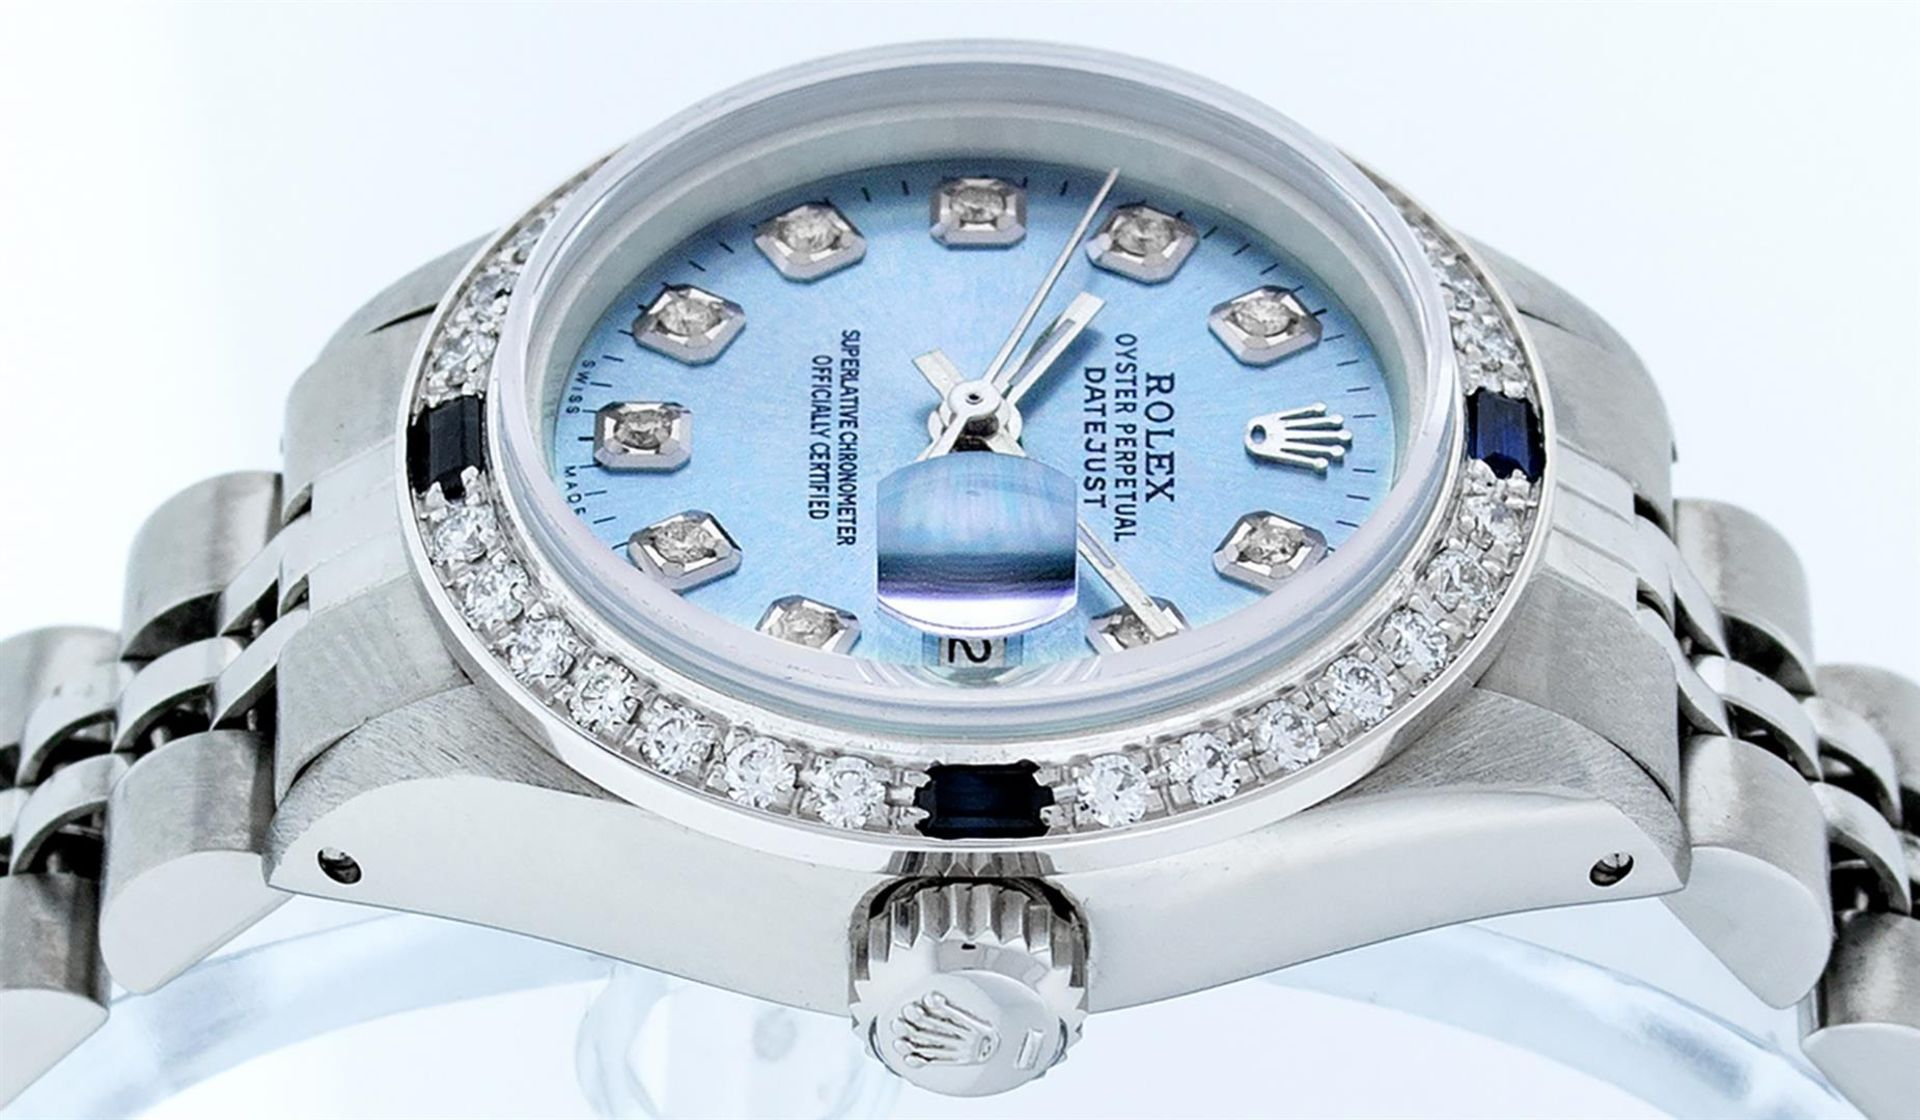 Rolex Ladies Stainless Steel Sky Blue Diamond & Sapphire Datejust Wristwatch - Image 4 of 9